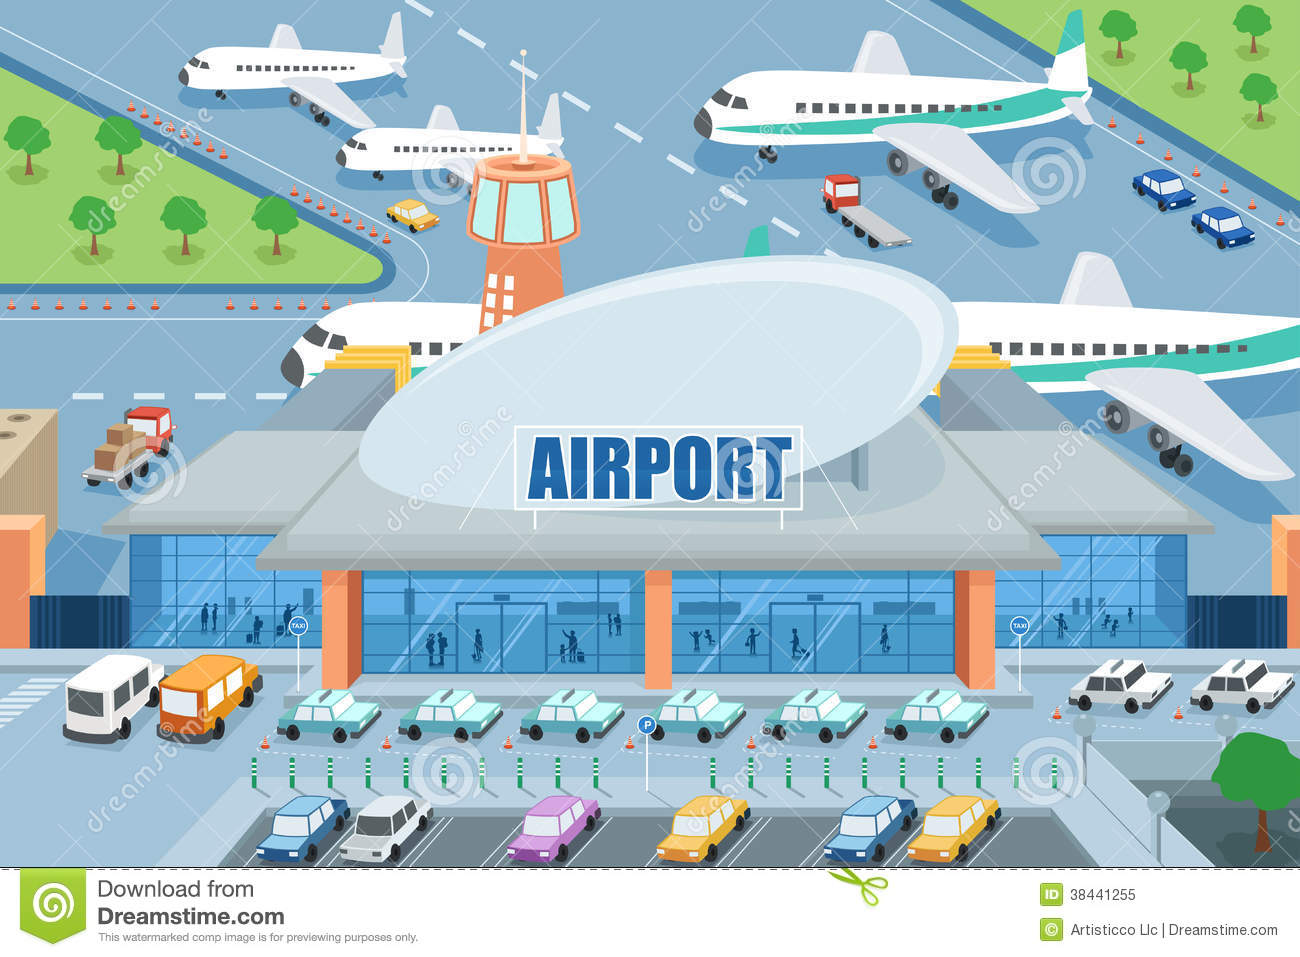 Airport Clipart Free.